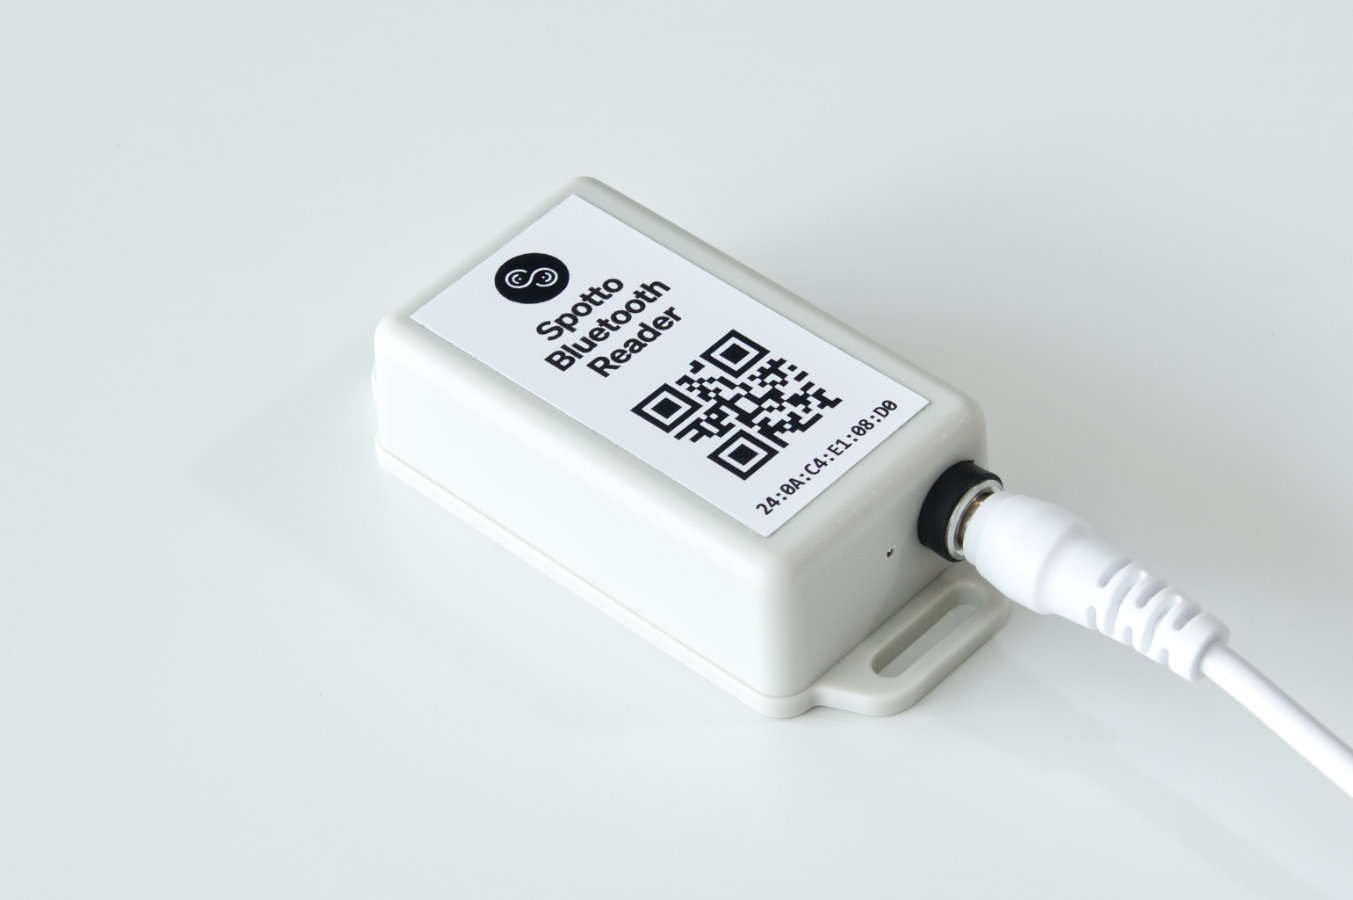 Spotto B1 Bluetooth Beacon Reader for detecting asset tags indoors.